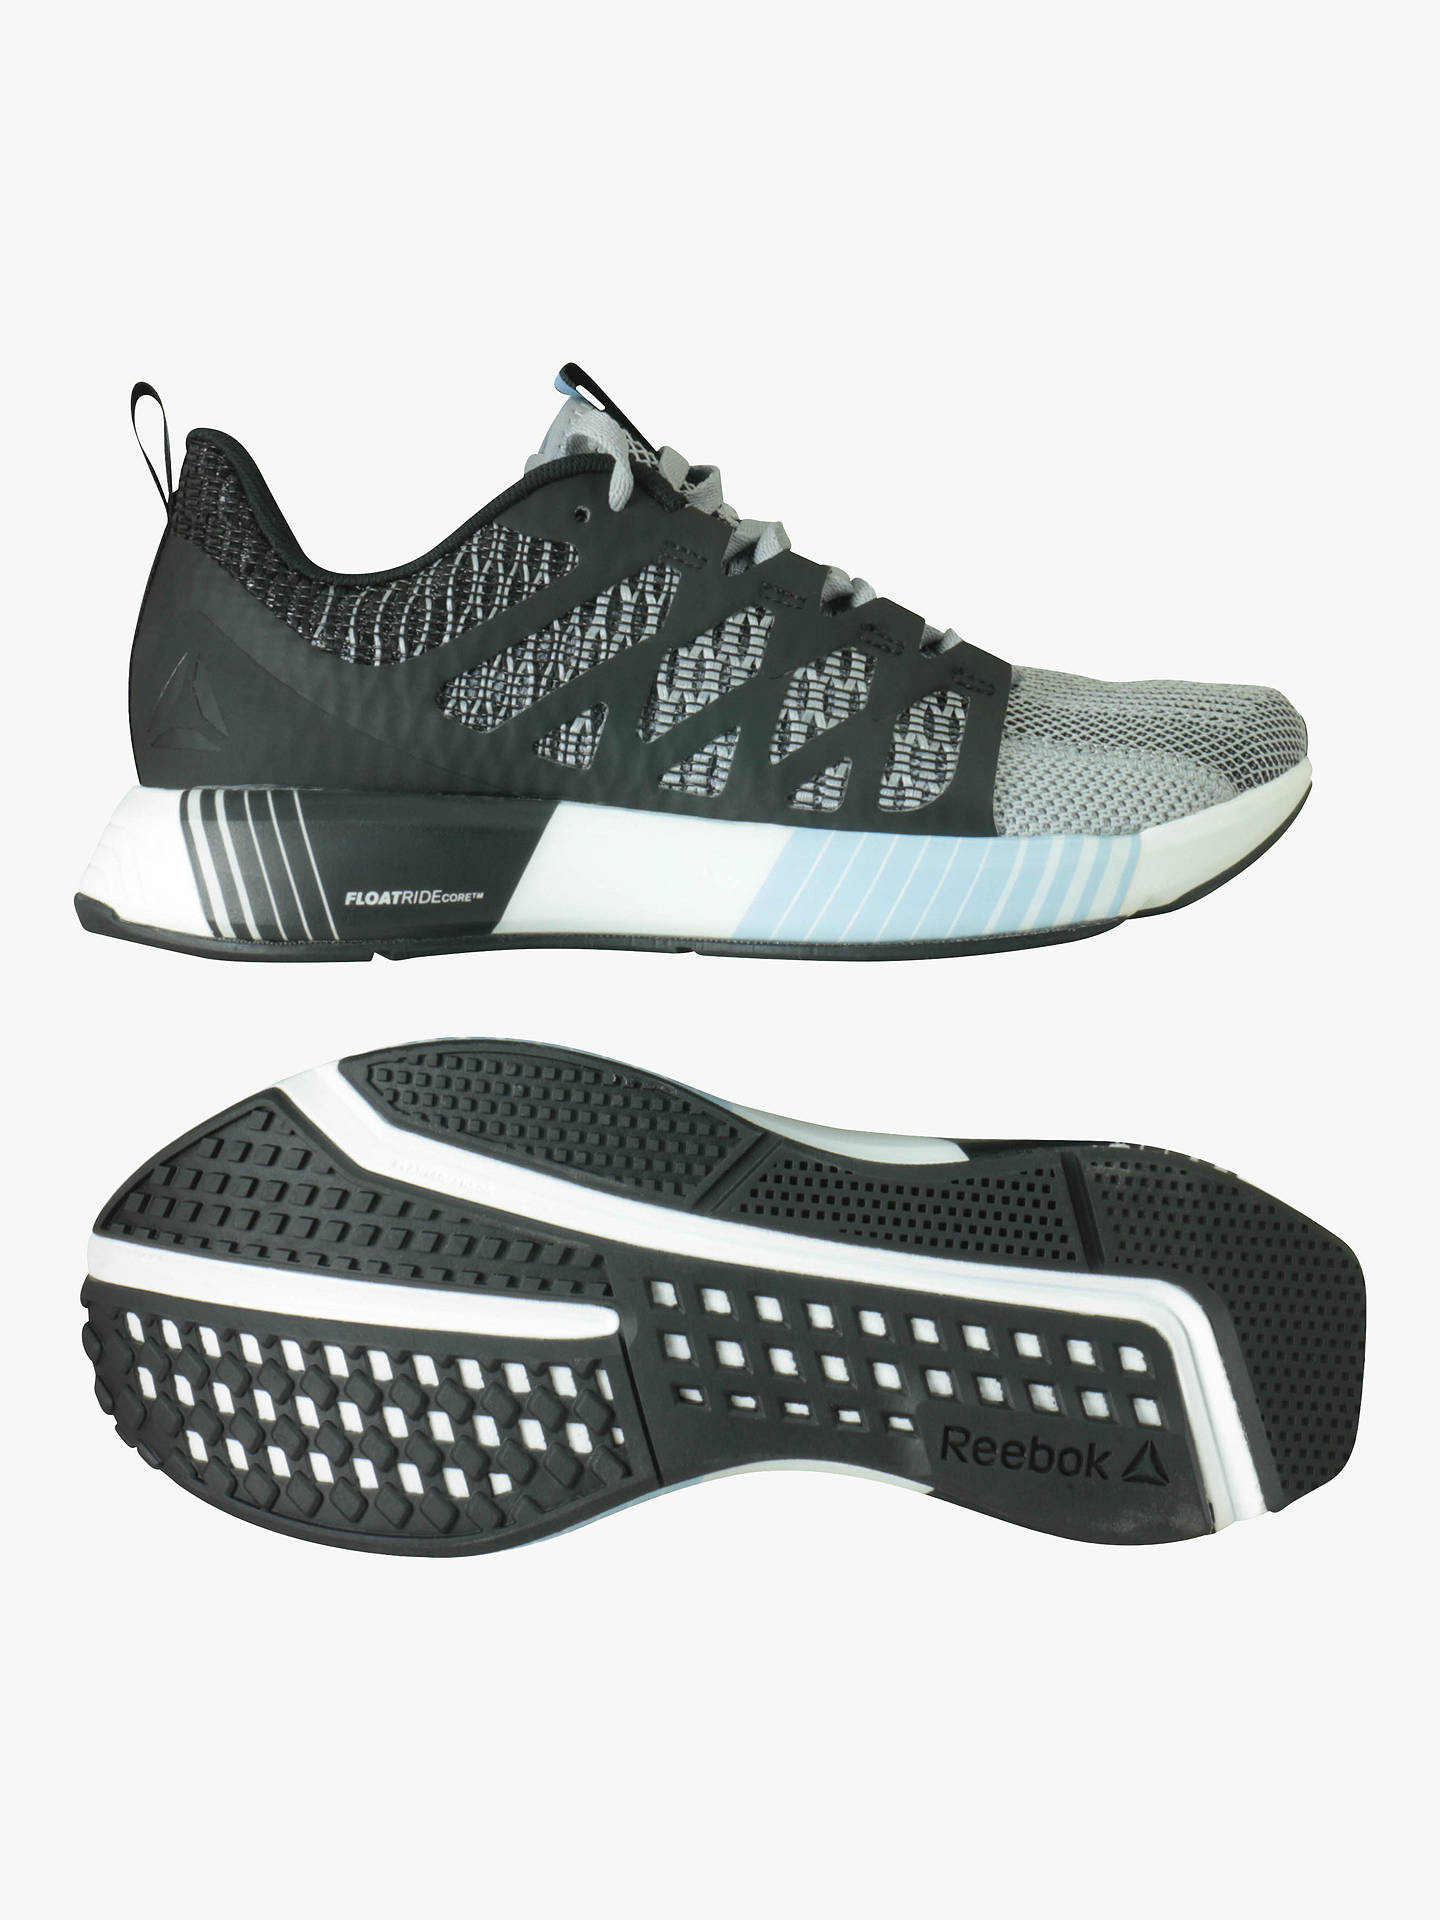 6e0f72d8126 Reebok Fusion Flexweave Cage Women s Trainers at John Lewis   Partners